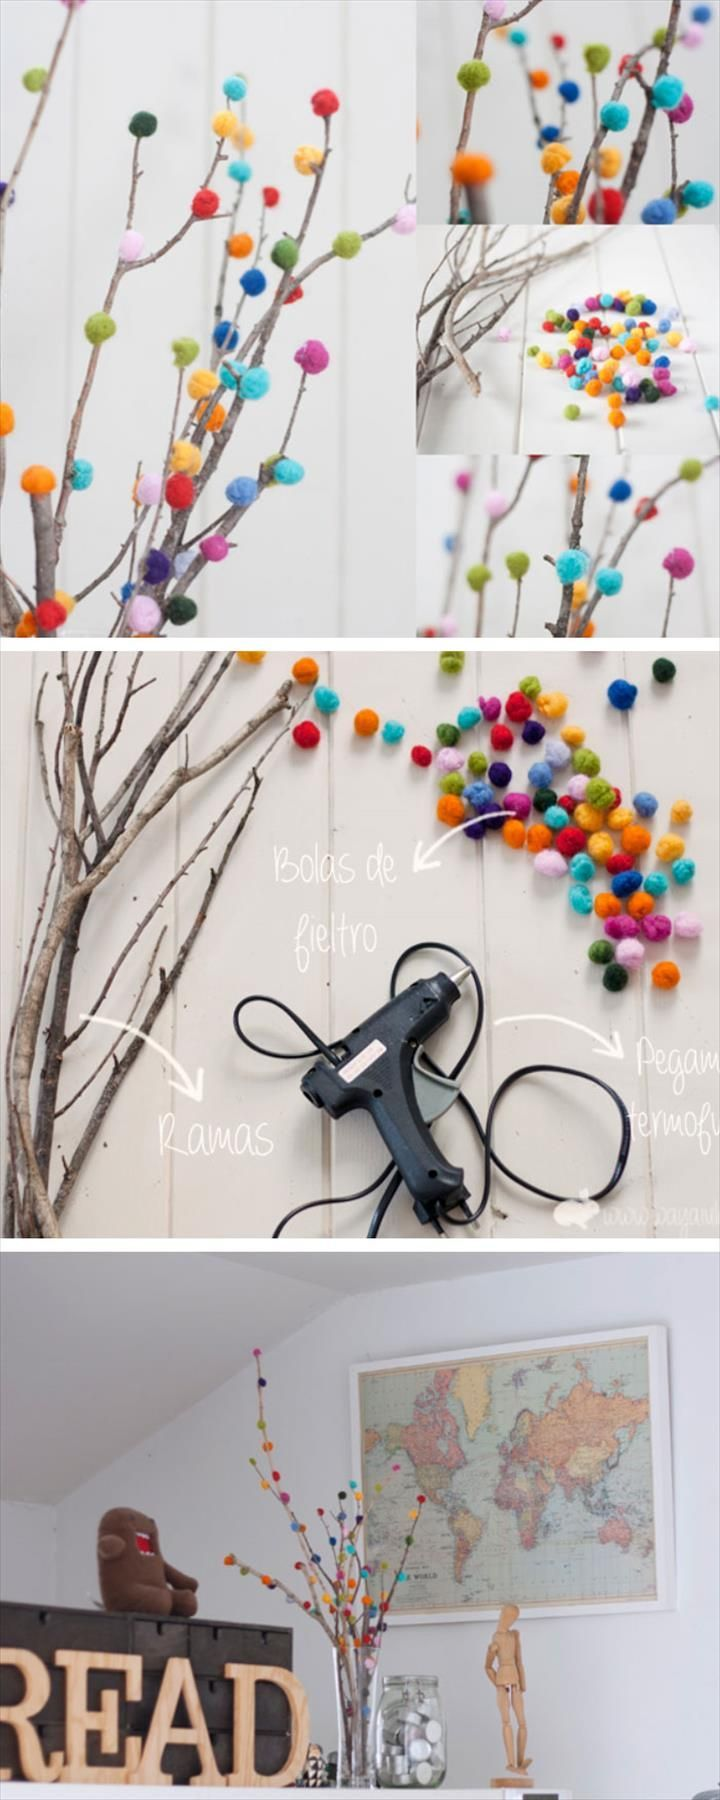 DIY Pom Pom Tree – 65 DIY Mothers Day Crafts – Merry & Simple Ideas  DIY Pom Pom Tree – 65 DIY Mothers Day Crafts – Merry & Simple Ideas  #einfache #happy #ideen #muttertagshandwerk The post DIY Pom Pom Tree – 65 DIY Mothers Day Crafts – Merry & Simple Ideas appeared first on Woman Casual.